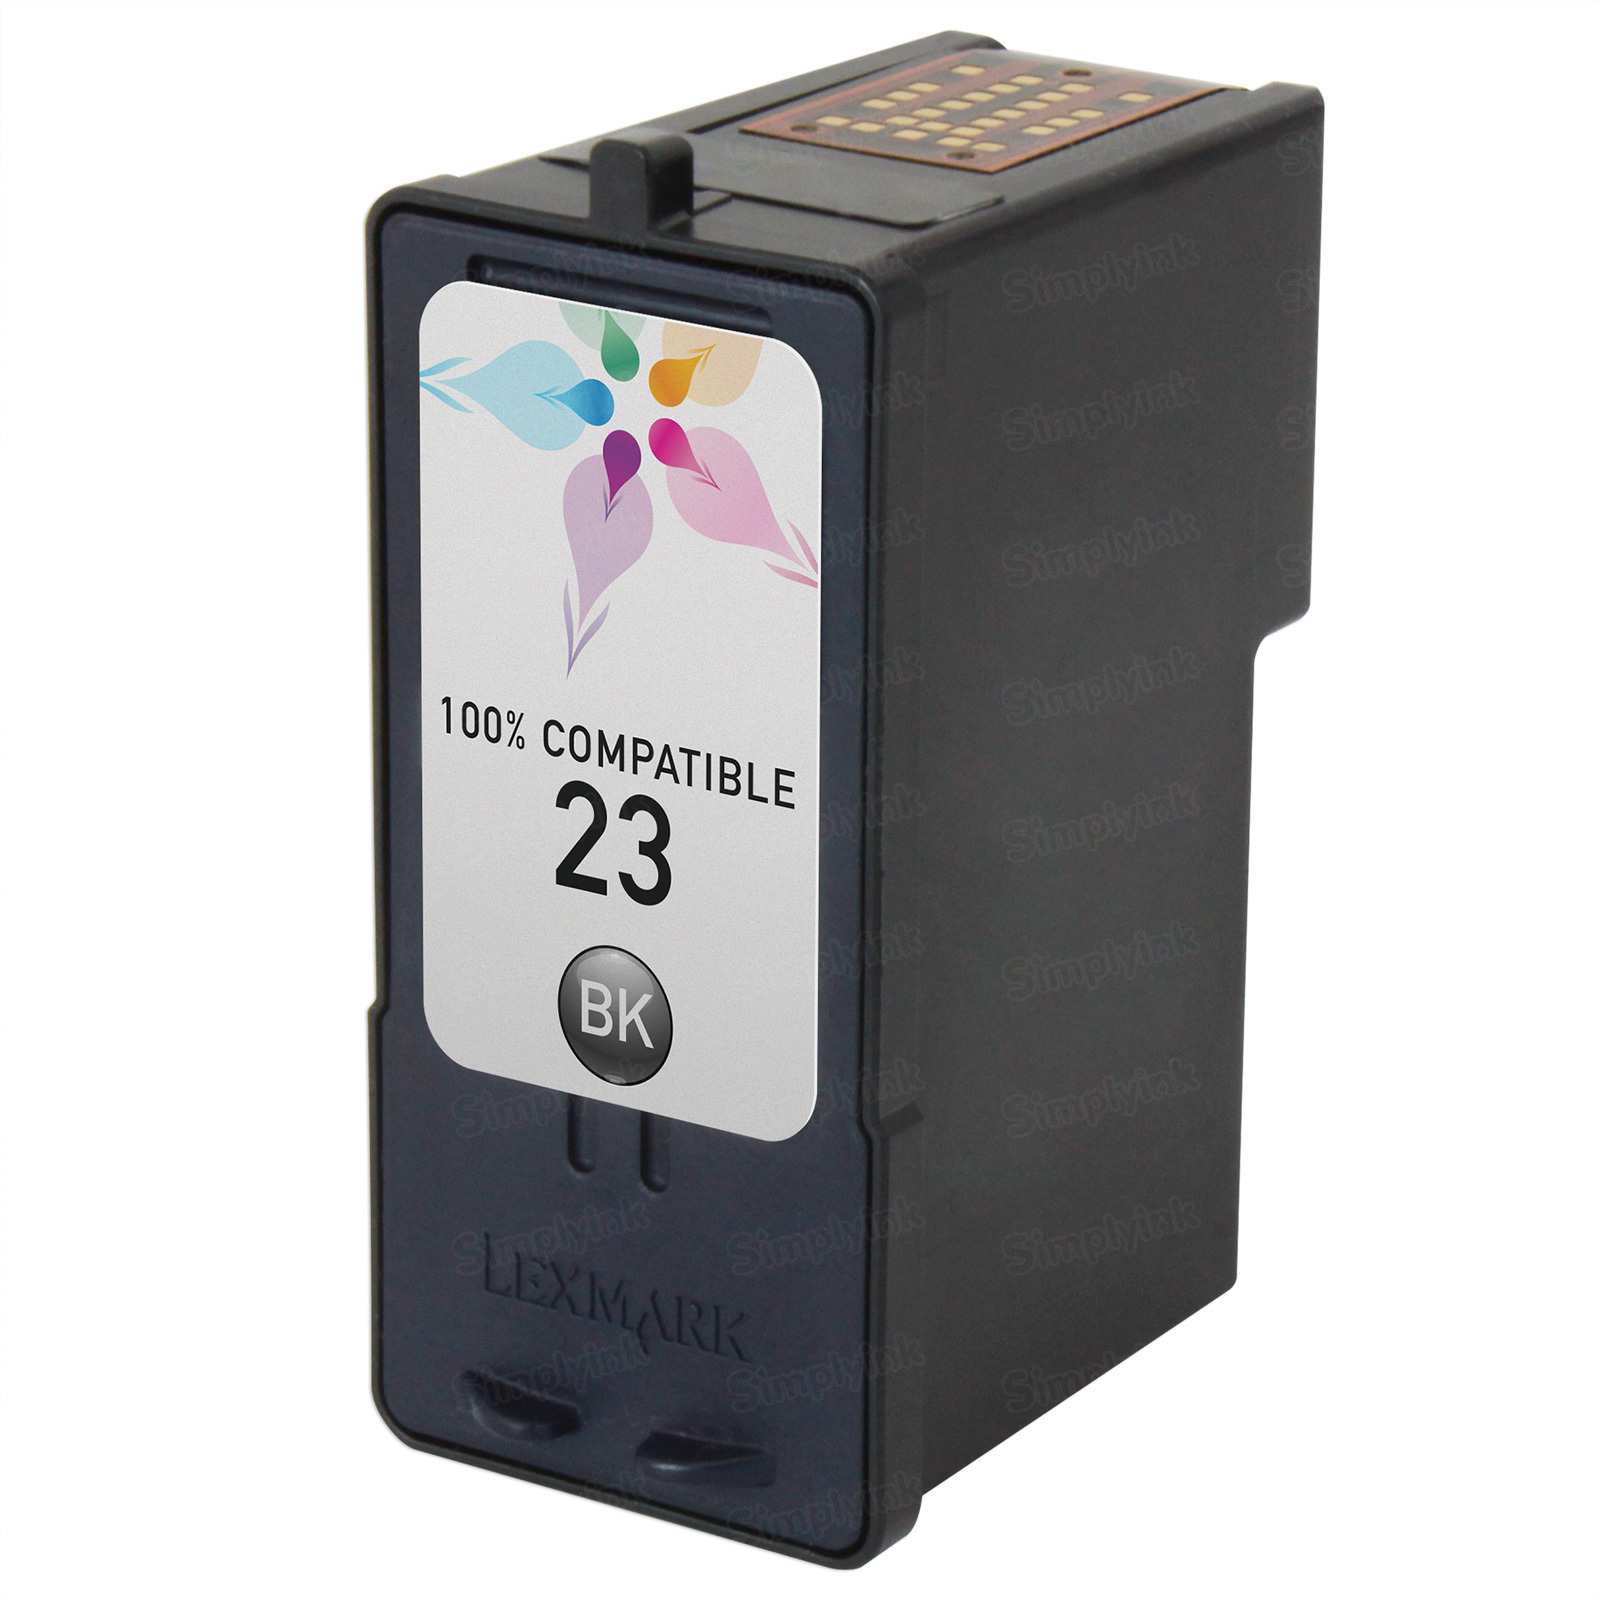 Lexmark Remanufactured 18C1523 Black Ink